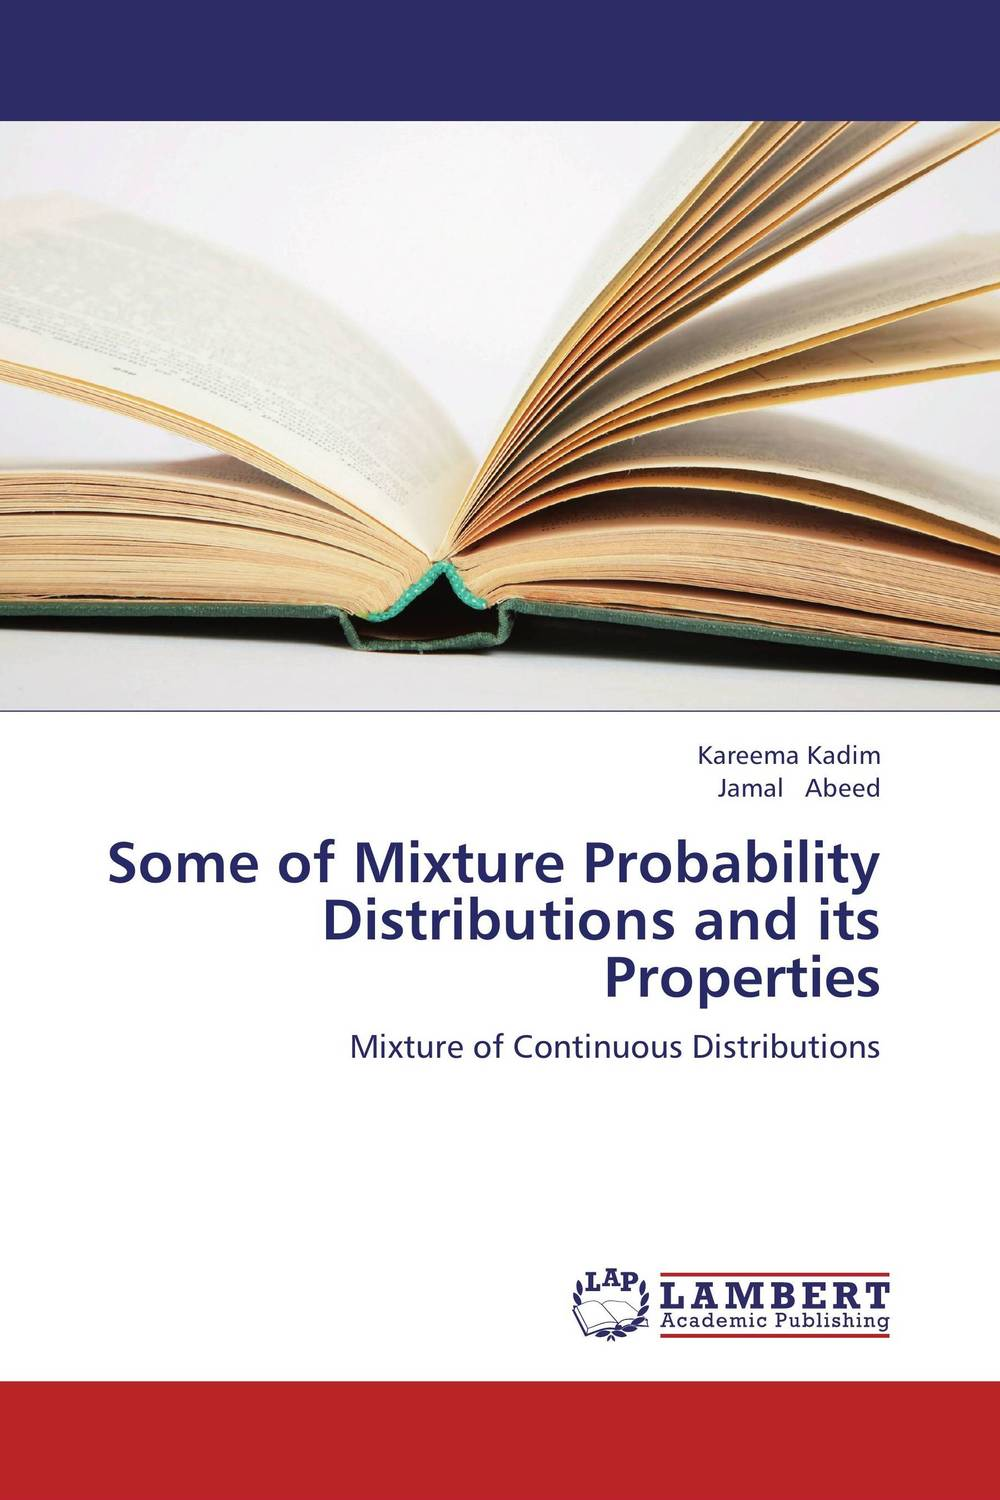 Some of Mixture Probability Distributions and its Properties